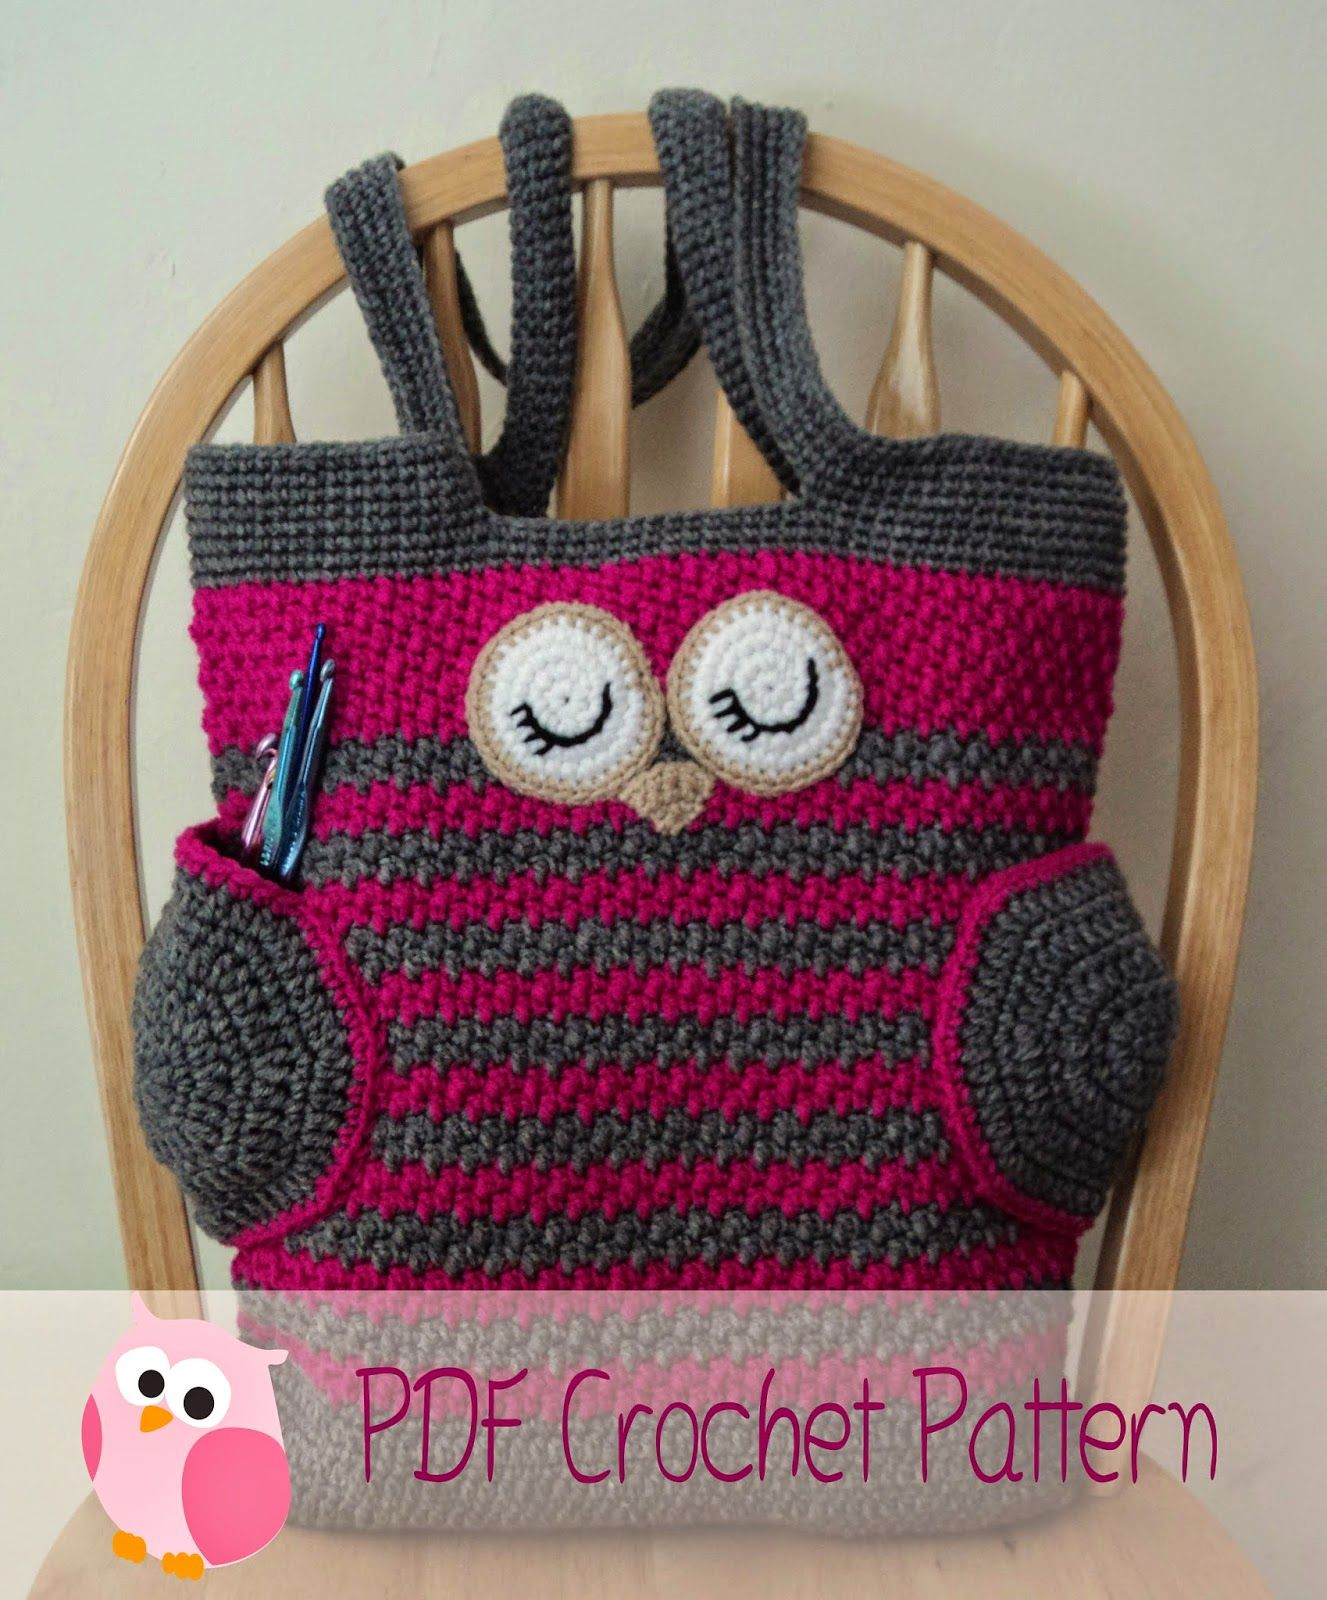 Httpmy cutelittlecraftsspot201205sleepy owl tote bag here is my newest pattern the sleepy owl tote bag crochet this sleepy owl for yourself or a friend bankloansurffo Choice Image